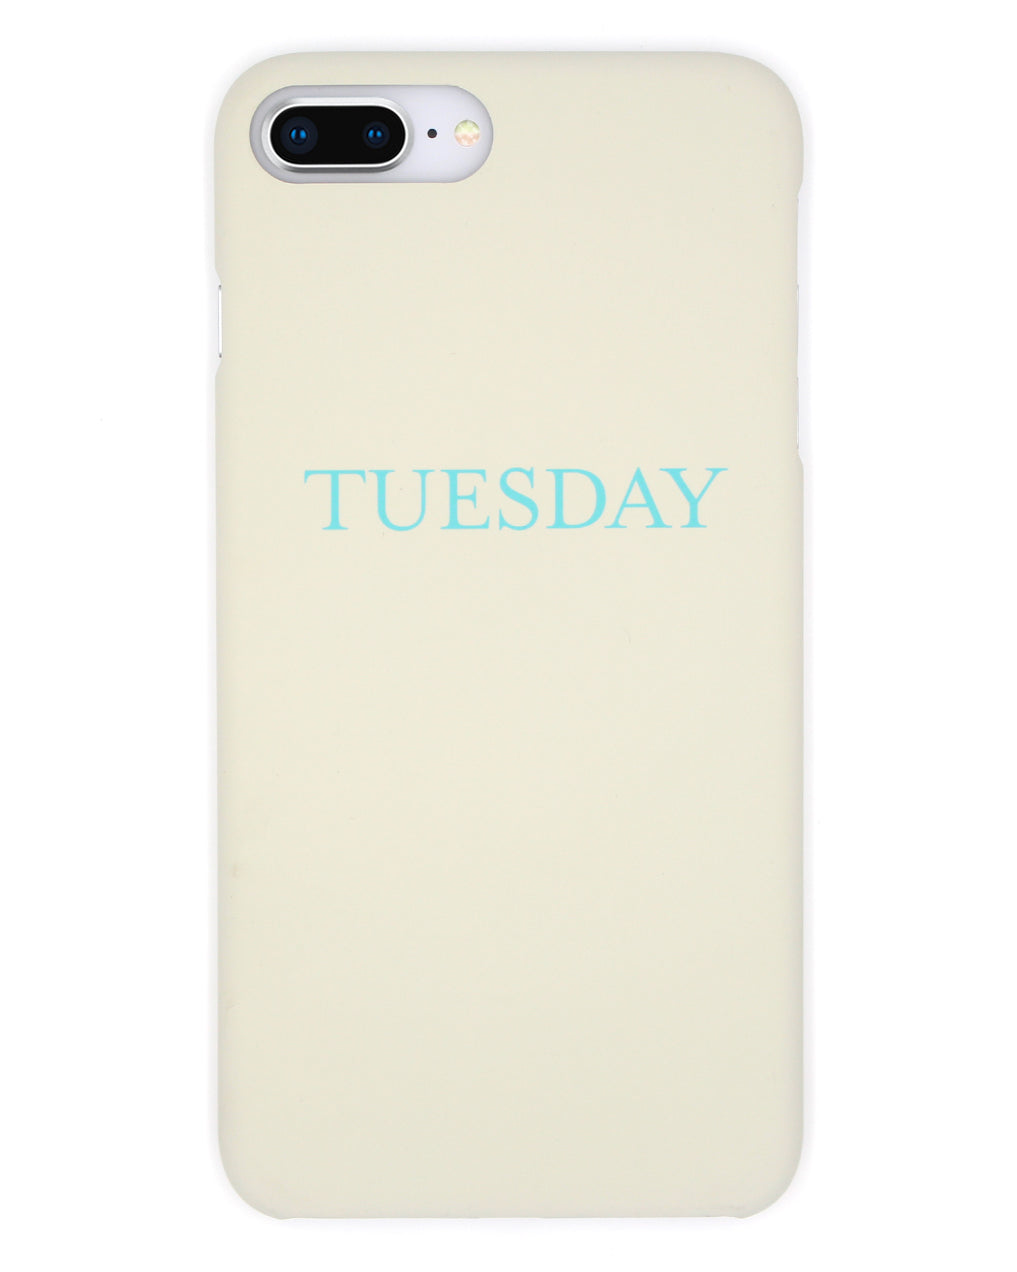 Tuesday iPhone Case - Coverlab